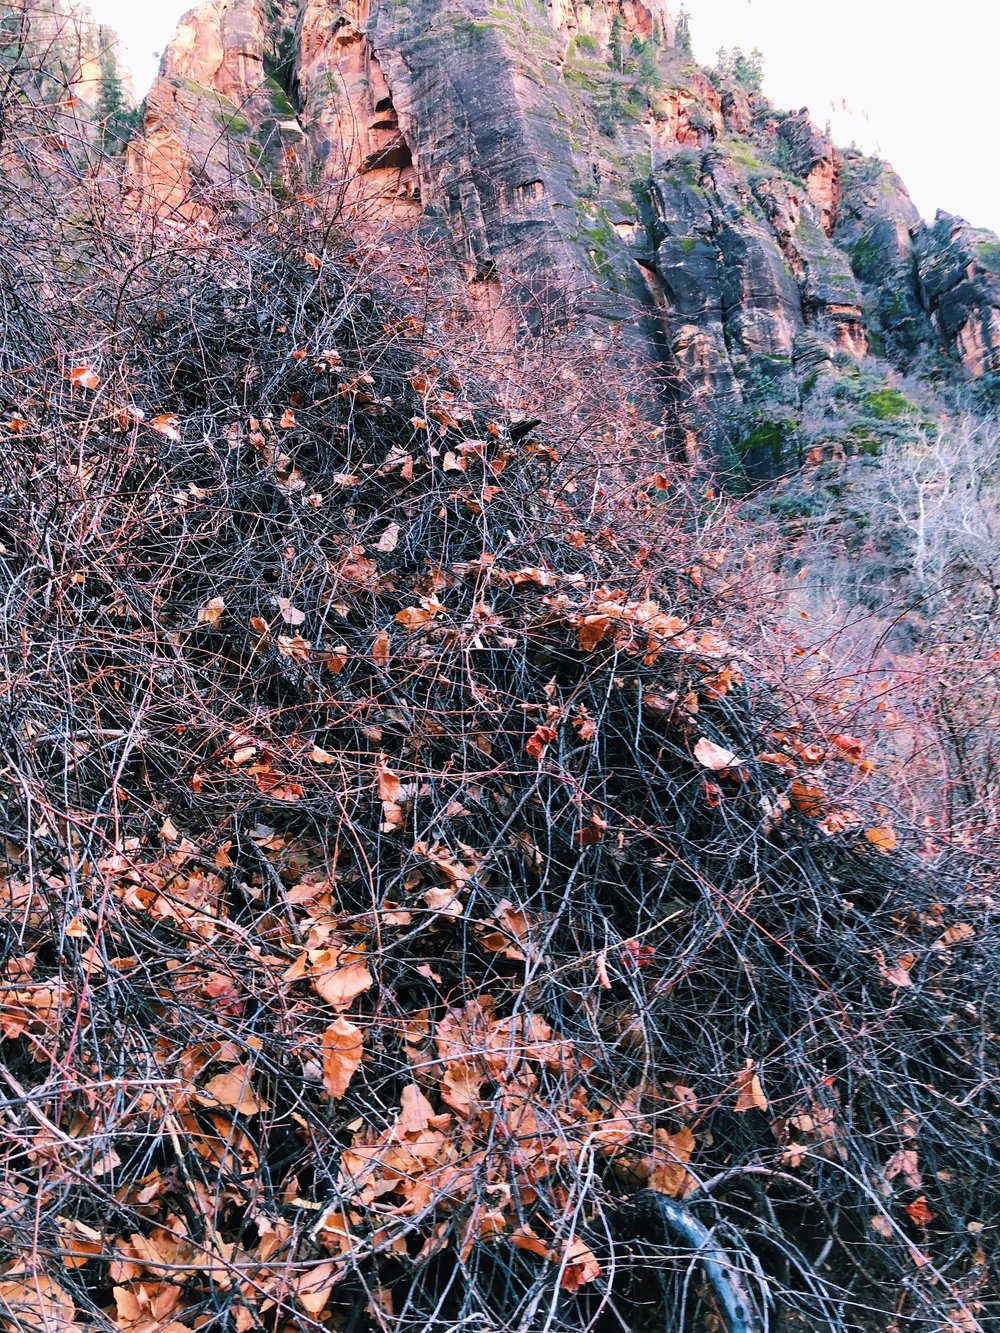 Vitis arizonica, Canyon wild grape